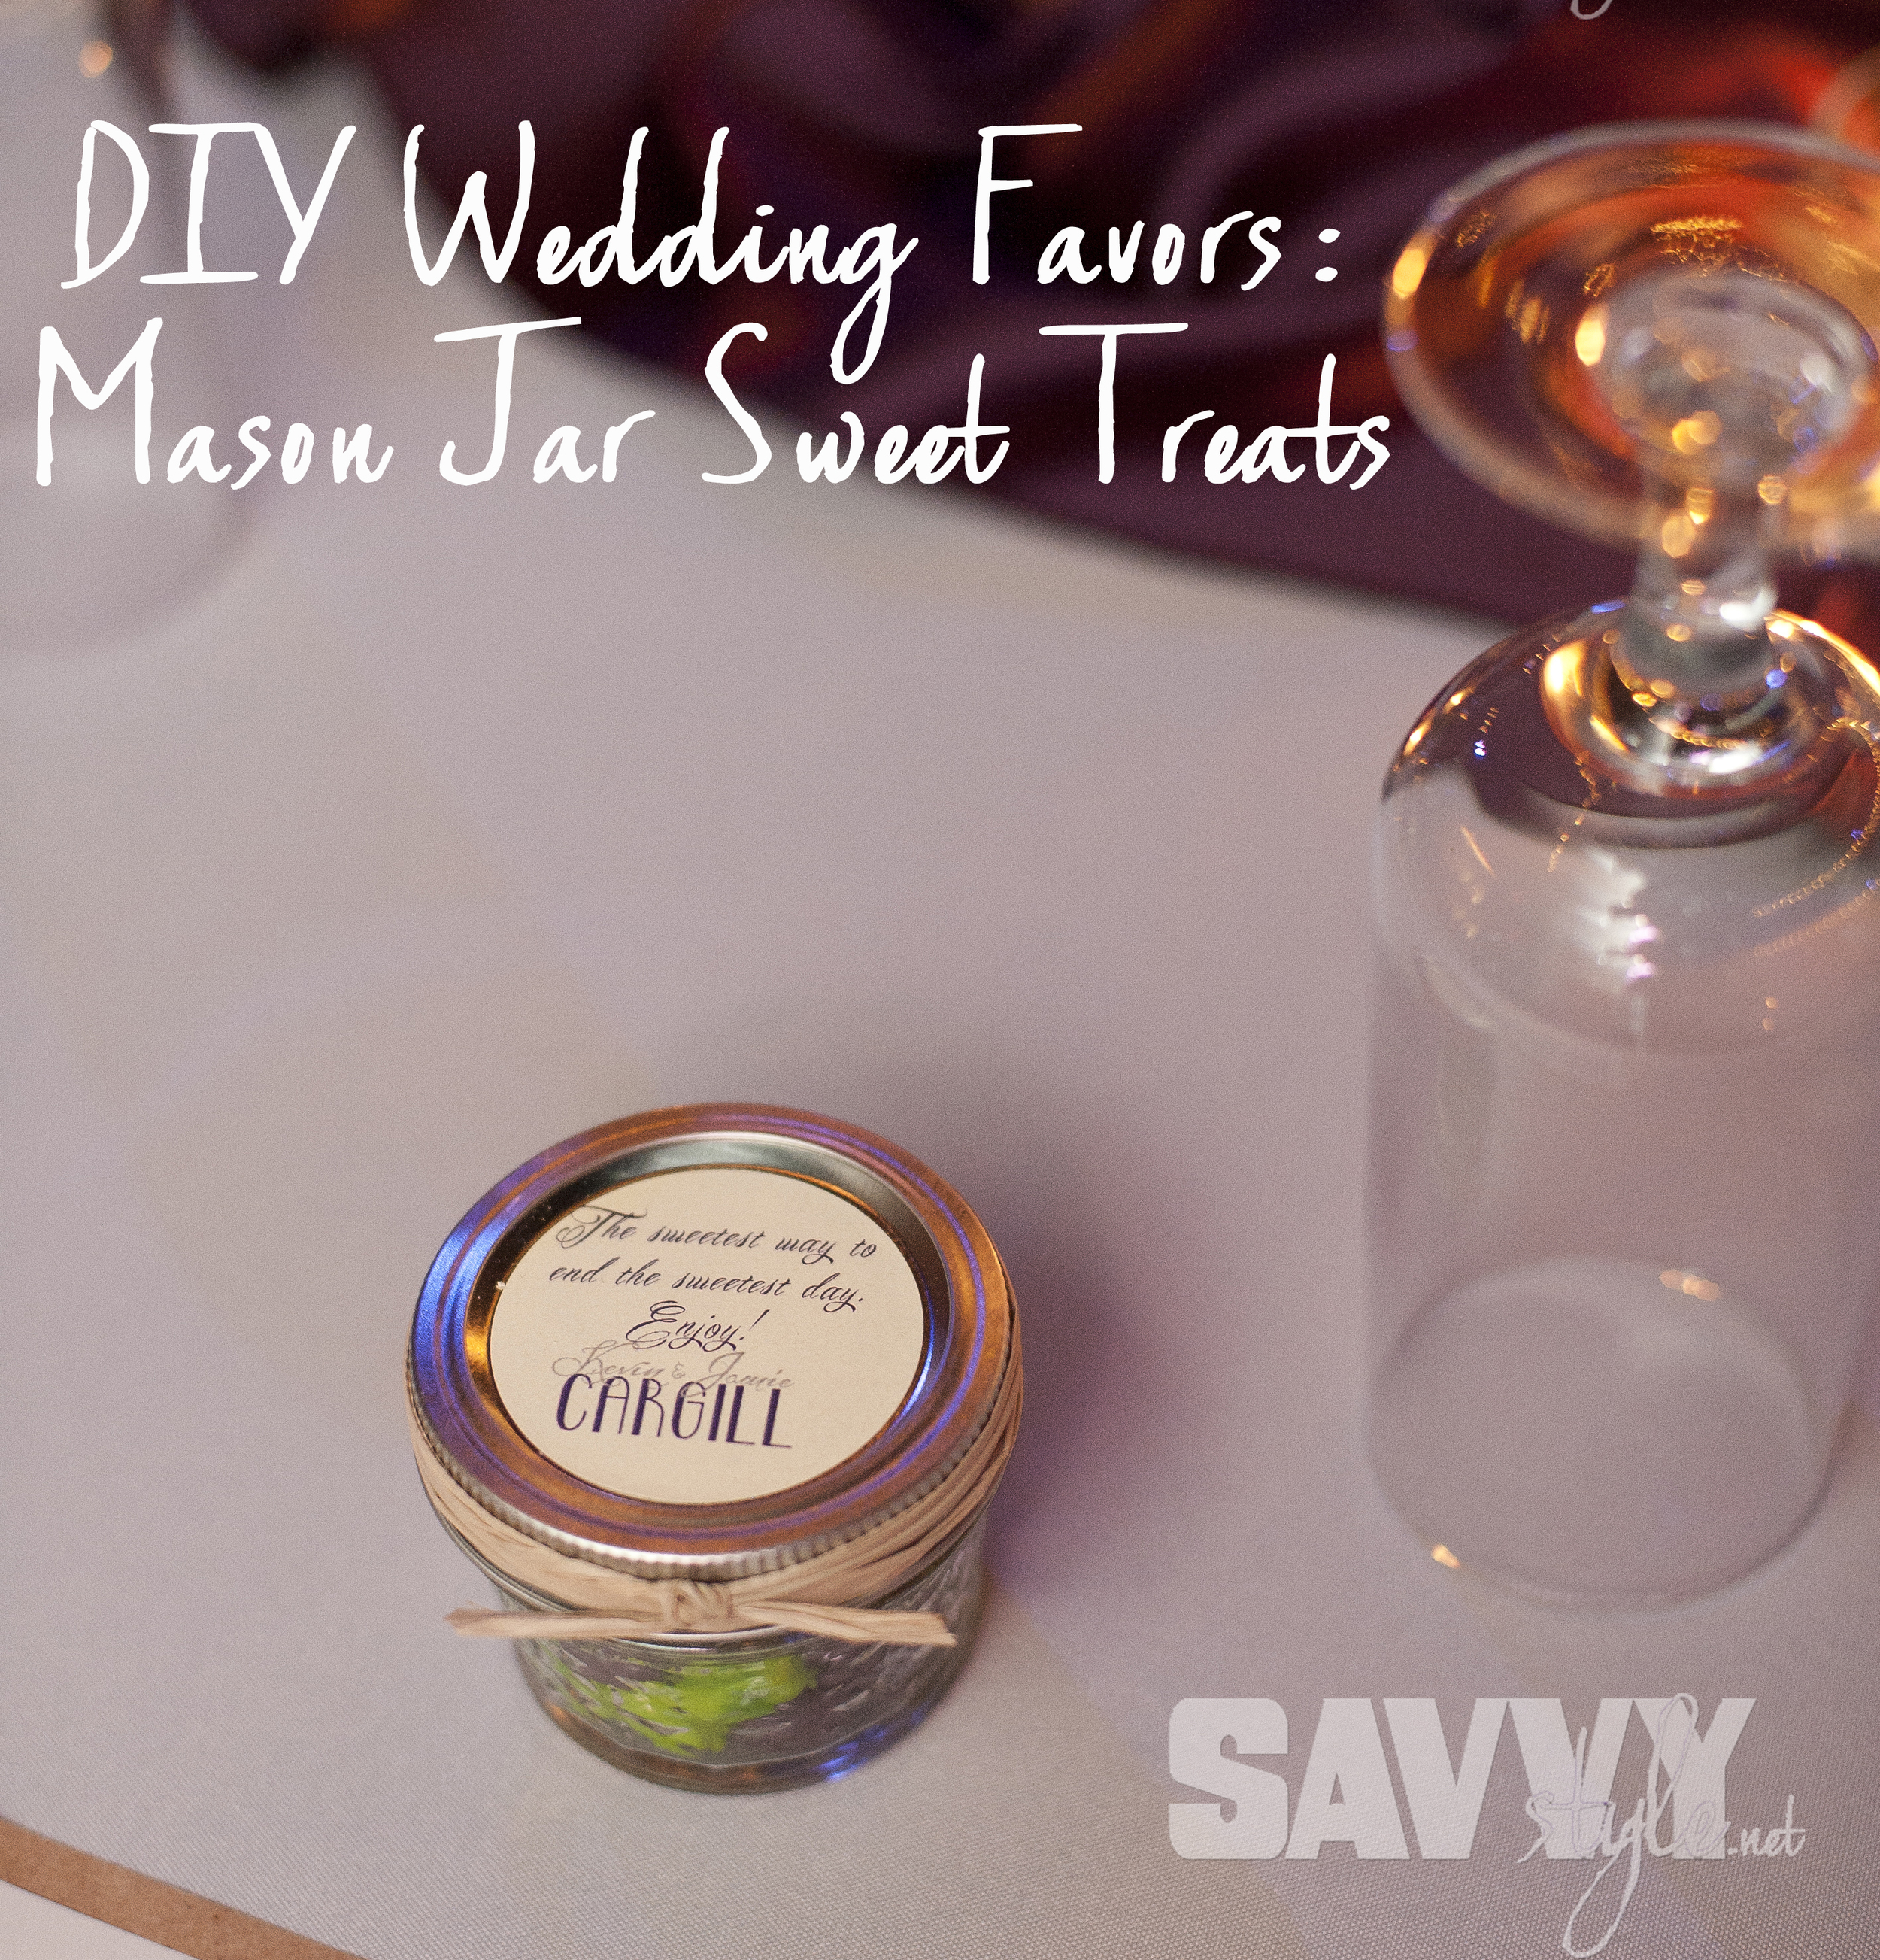 Diy Mason Jar Wedding Favor Treats Sweetwood Creative Co Atlanta Wedding Planner Upscale Event Design